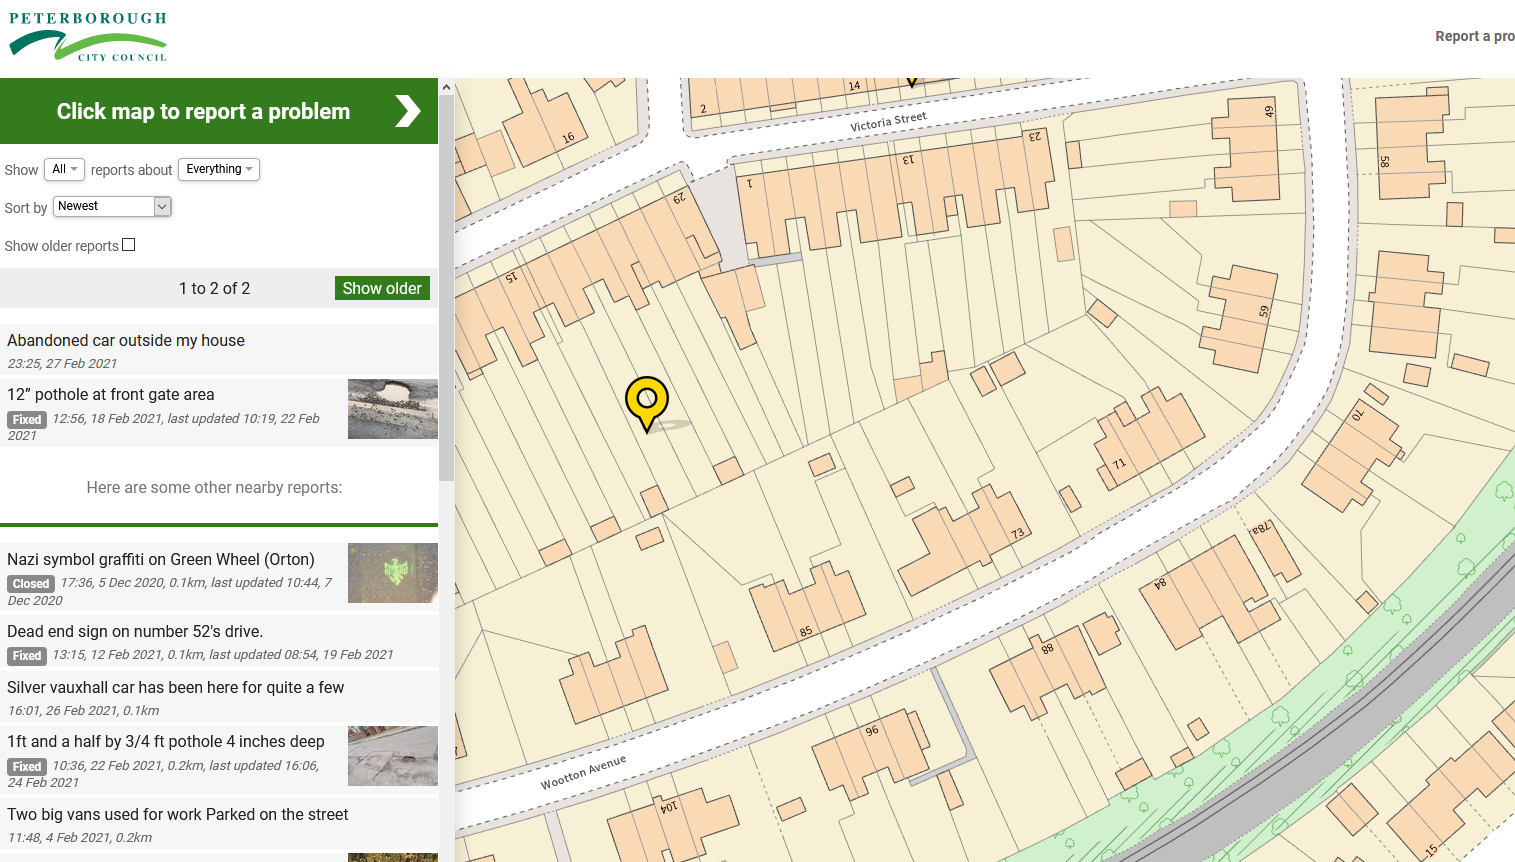 Peterborough City Council's FixMyStreet Pro reporting platform, with new OS maps